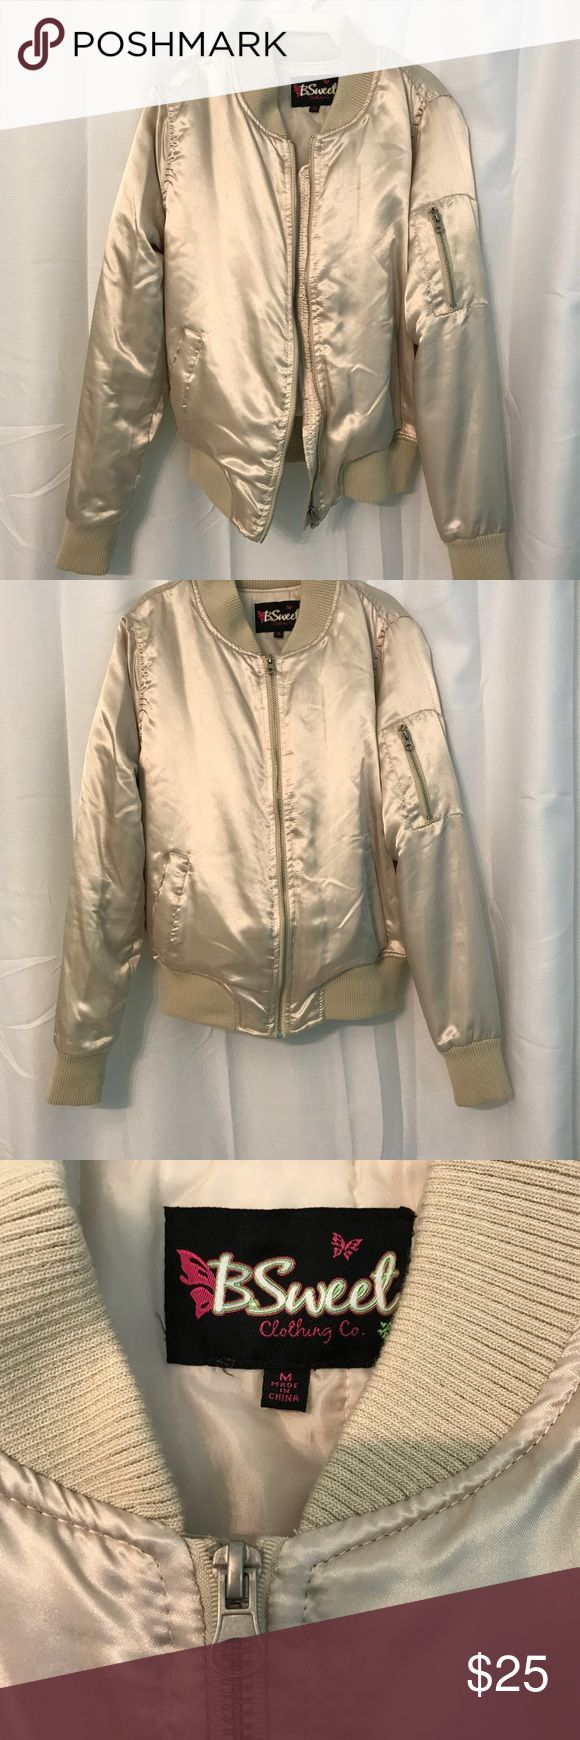 Metallic gold bomber jacket a very stunning light champagne colored bomber jacket from wet seal in size medium. I only wore this once, so it is in great condition. this piece is stylish but will also keep you warm! any questions feel free to ask! Wet Seal Jackets & Coats